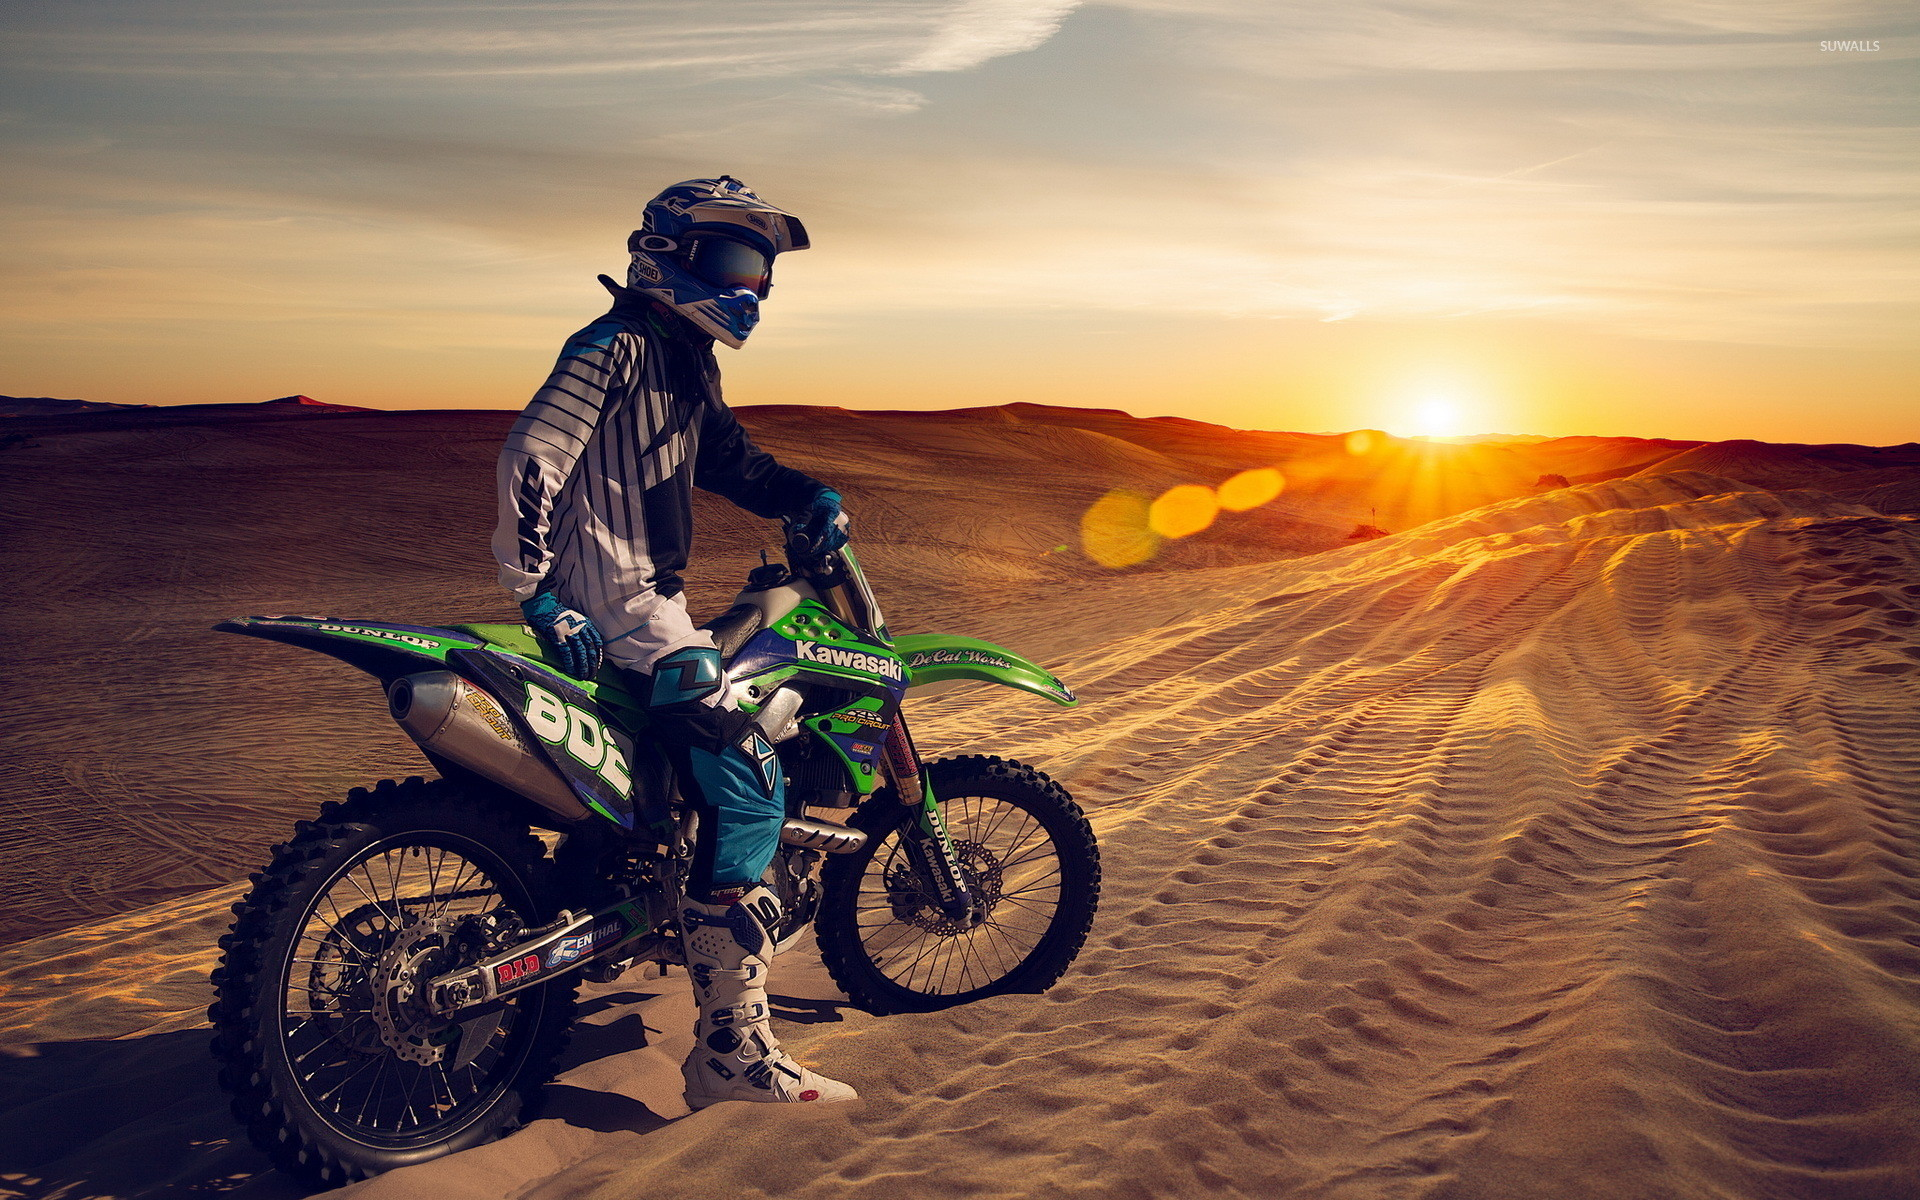 10 New Ktm Dirt Bike Wallpapers Full Hd 1080p For Pc: Dirt Bike Wallpapers ·① WallpaperTag